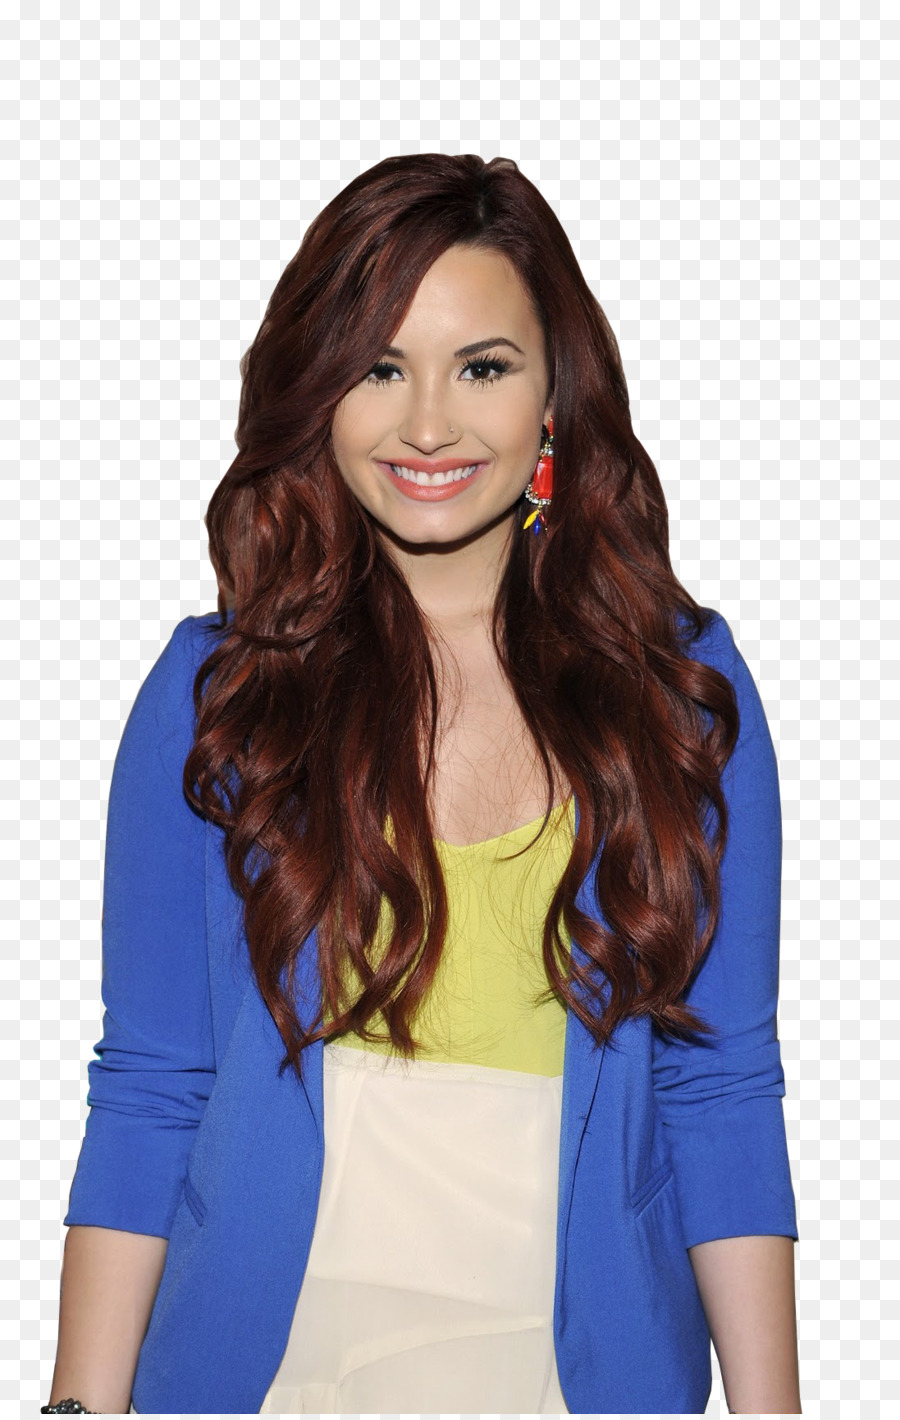 Demi Lovato Human Hair Color Hairstyle Hair Coloring Demi Lovato